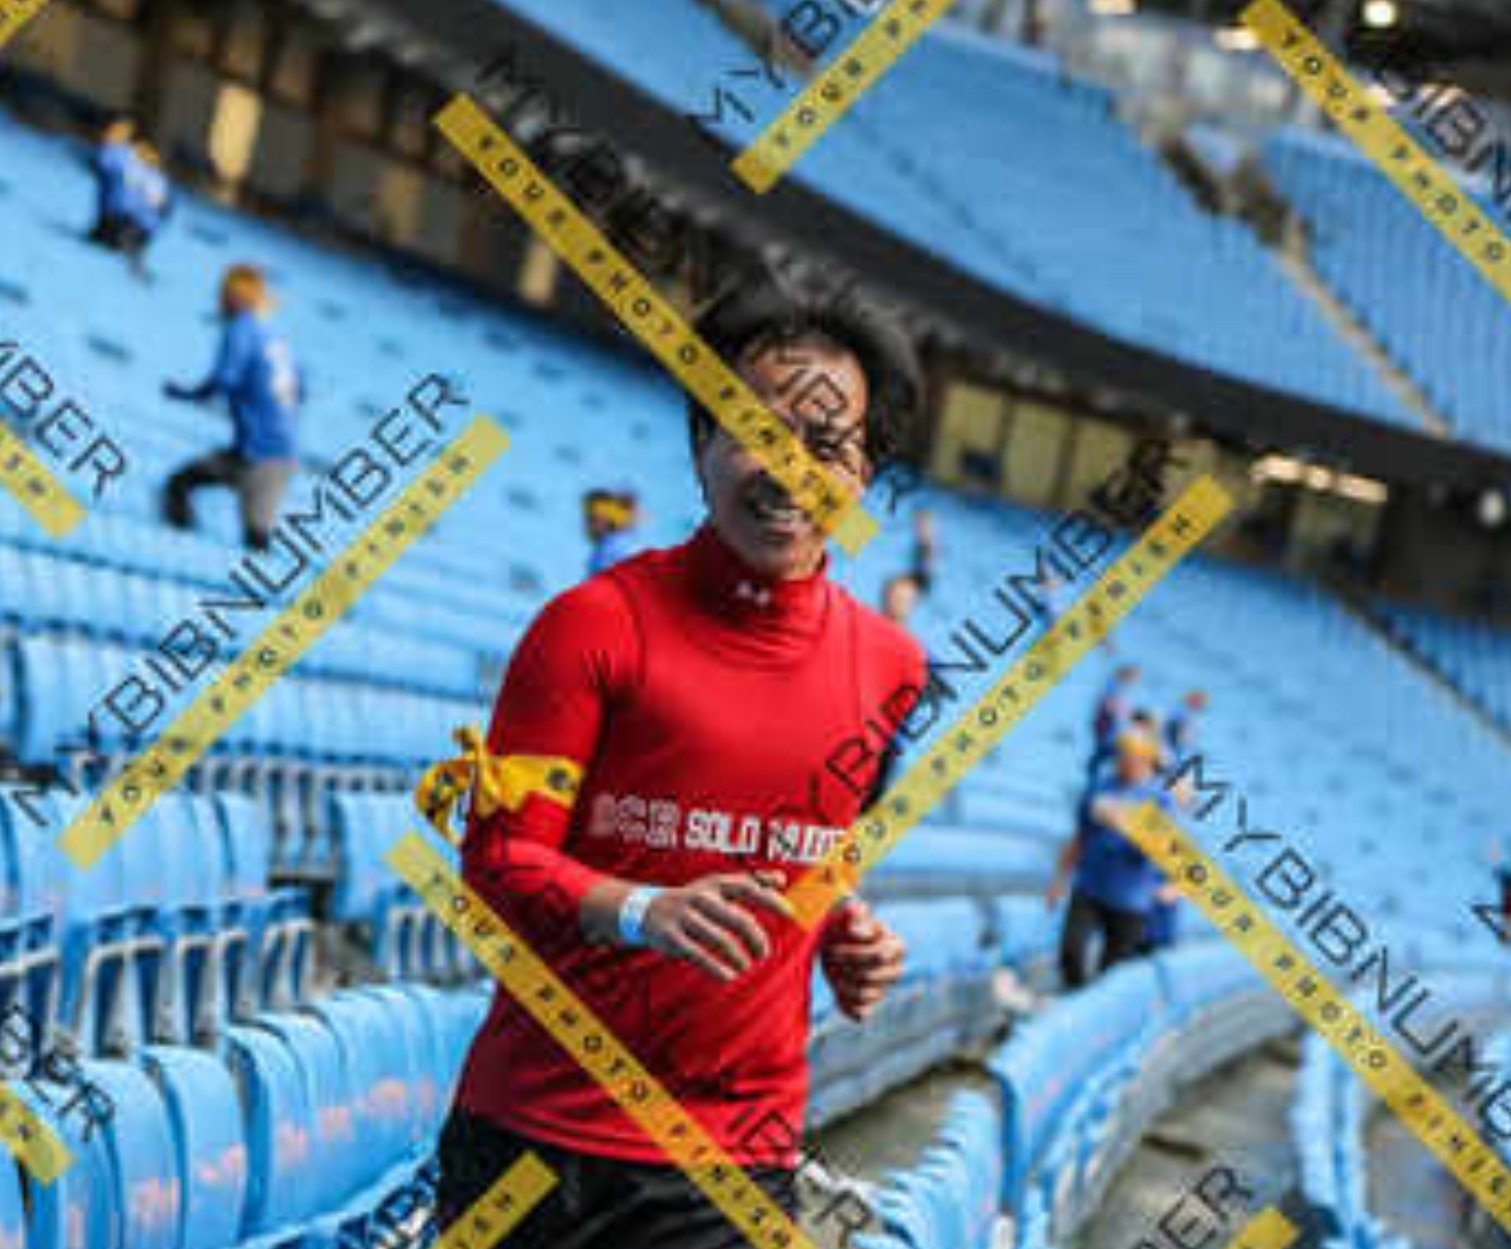 MHSOTF Inside the etihad